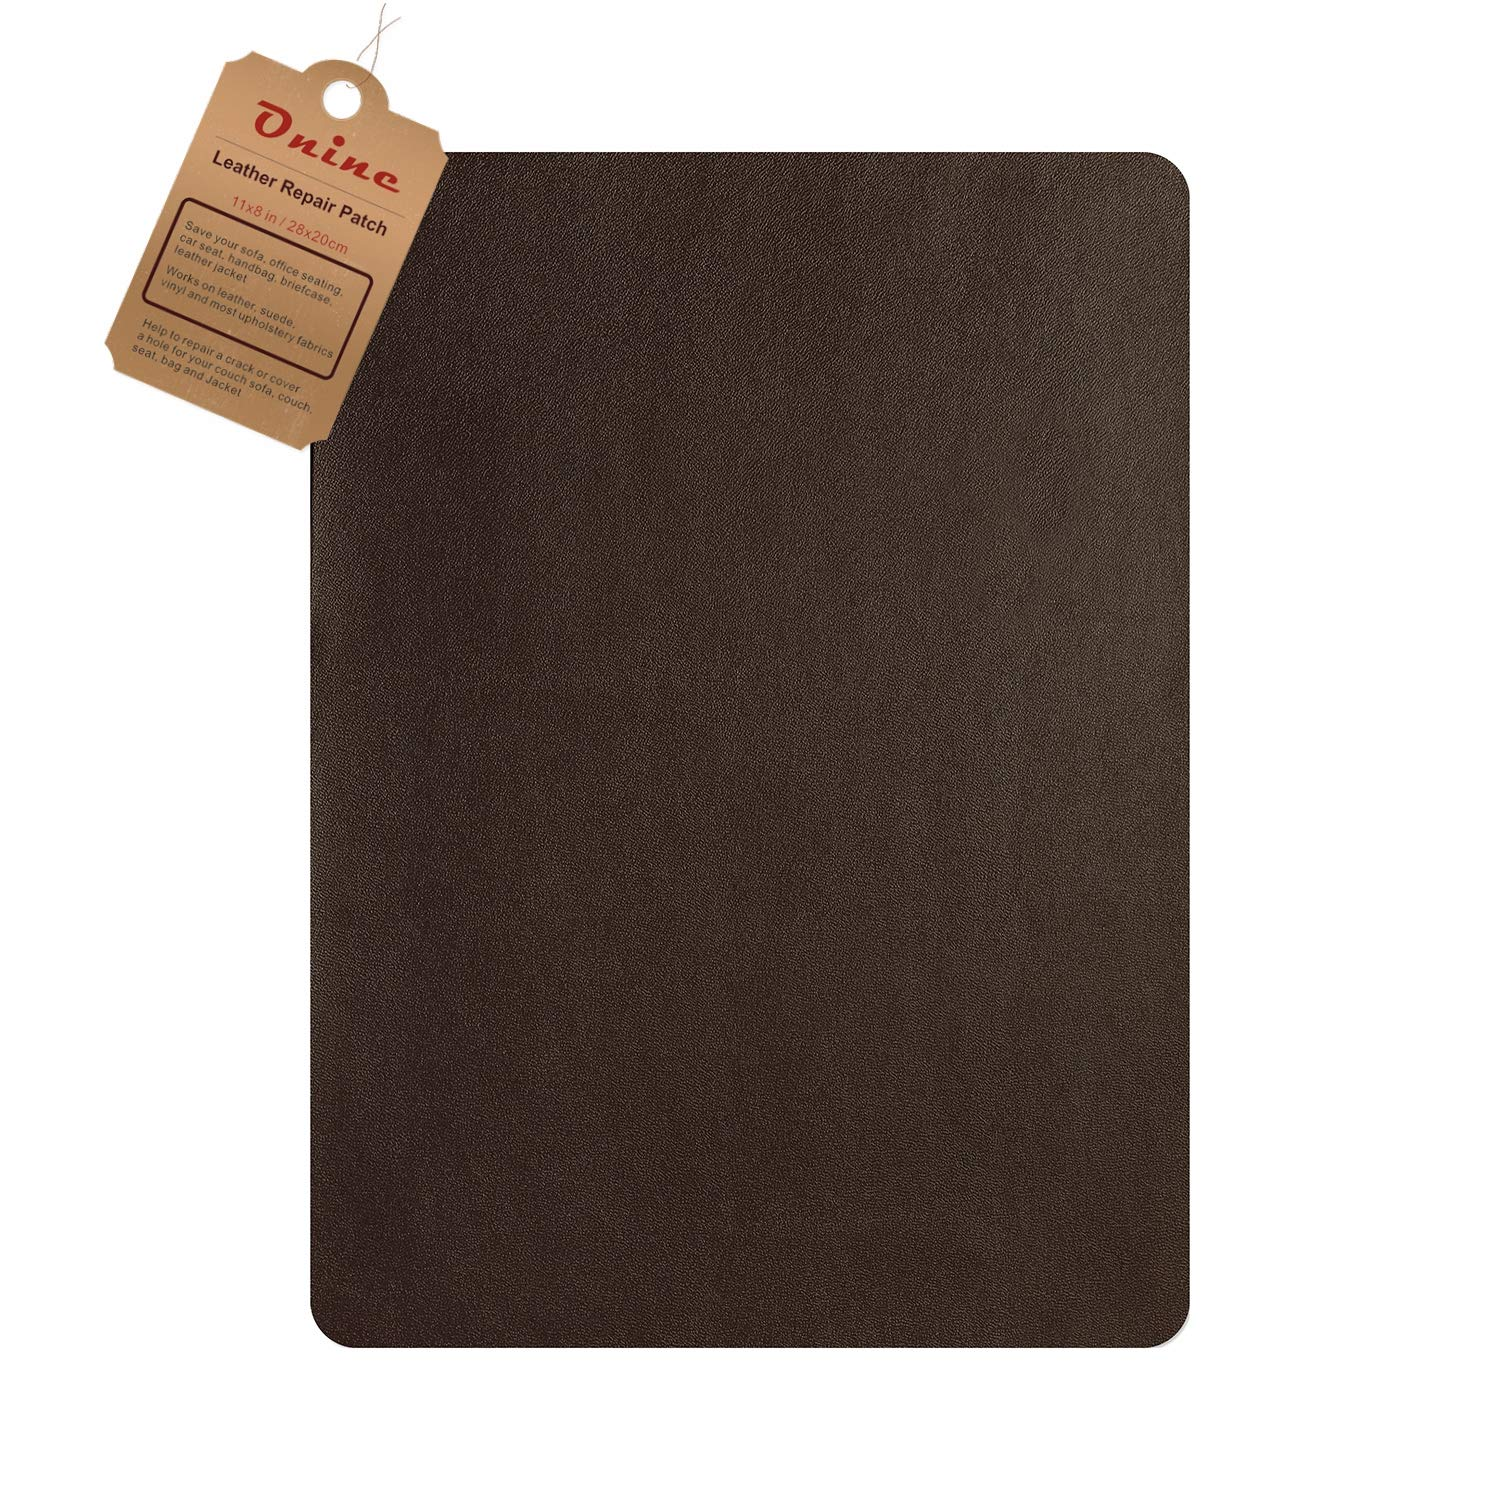 Leather Repair Patch,Self-Adhesive Couch Patch,Multicolor Available Anti Scratch Leather 8X11 Inch Peel and Stick for Sofas car Seats Hand Bags Jackets Dark Brown No.5